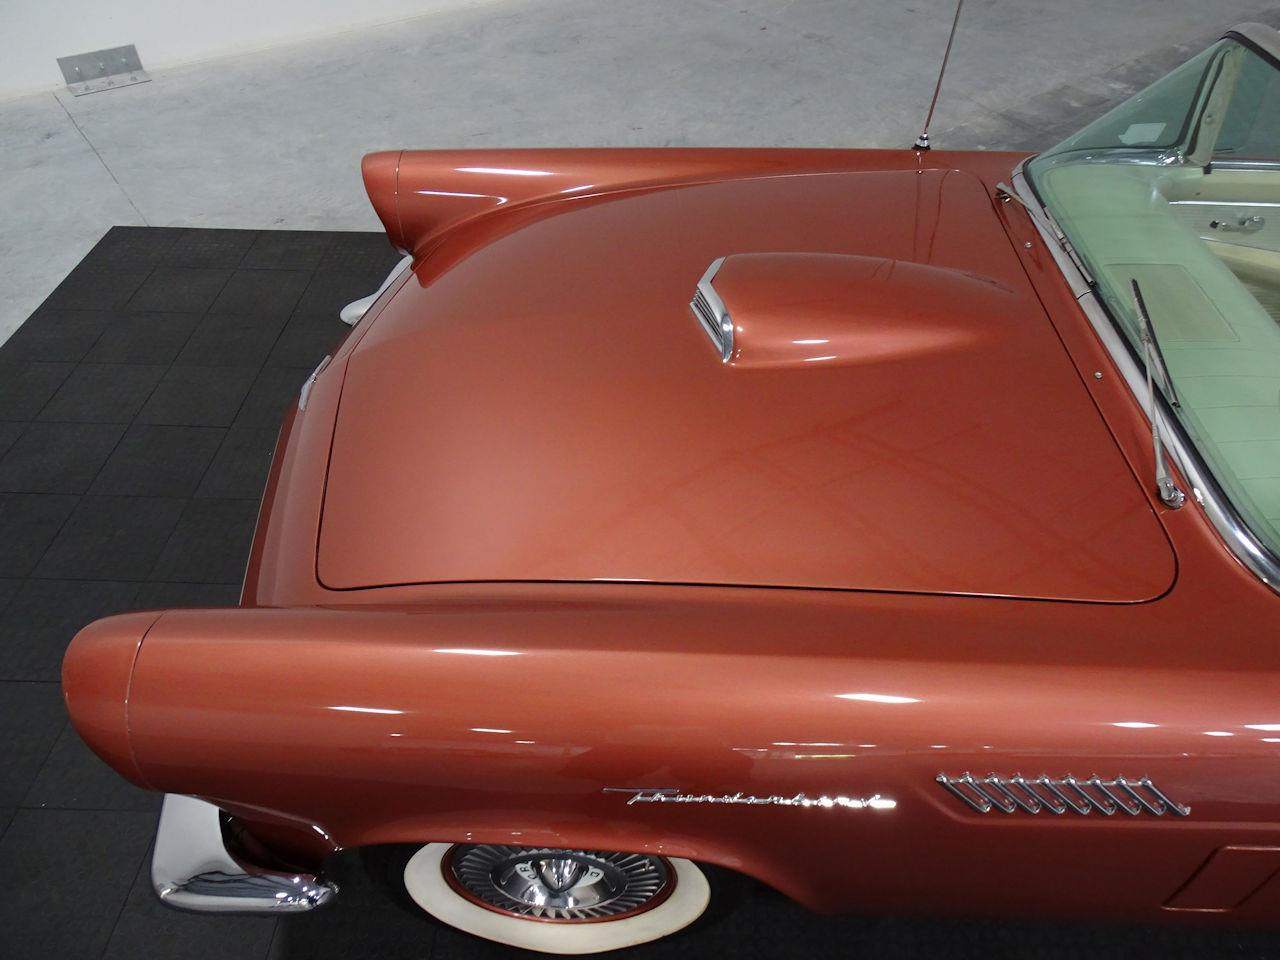 Large Picture of '57 Ford Thunderbird located in Texas - LUKB